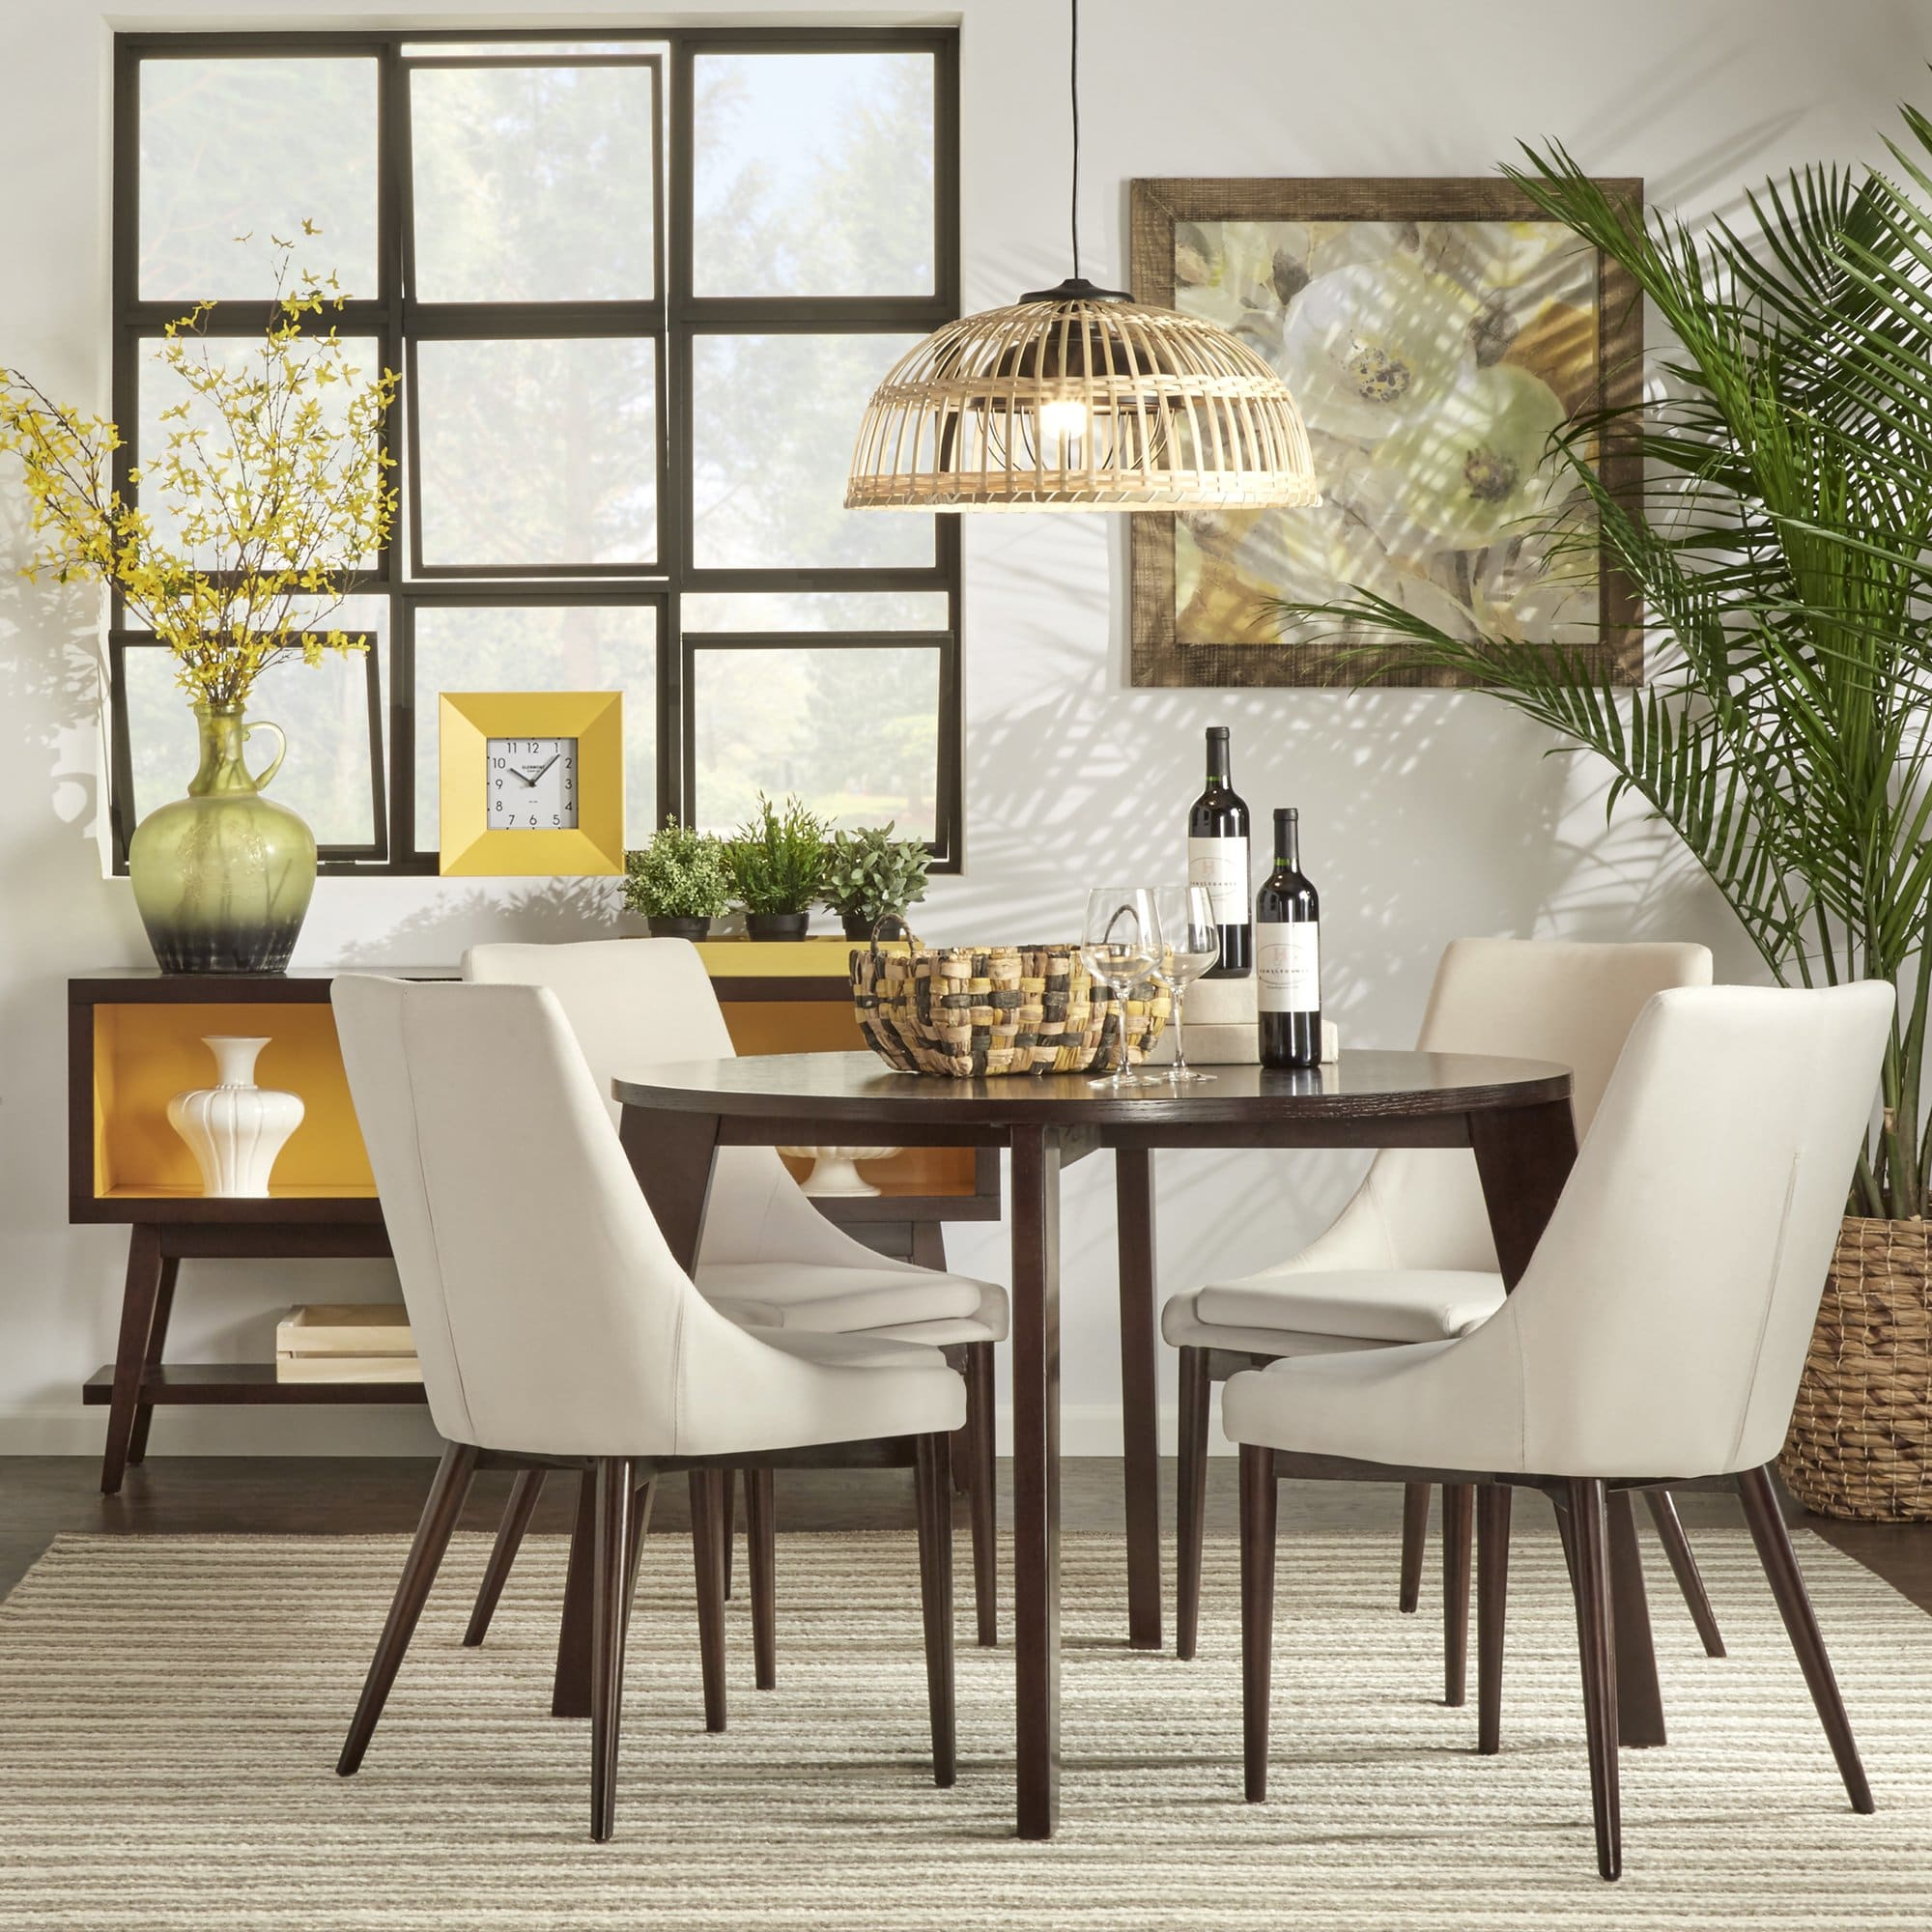 sasha brown angled leg round piece dining set inspire modern accent table side with shelf large silver clock fall runner patterns free decorator tablecloths pier bench black